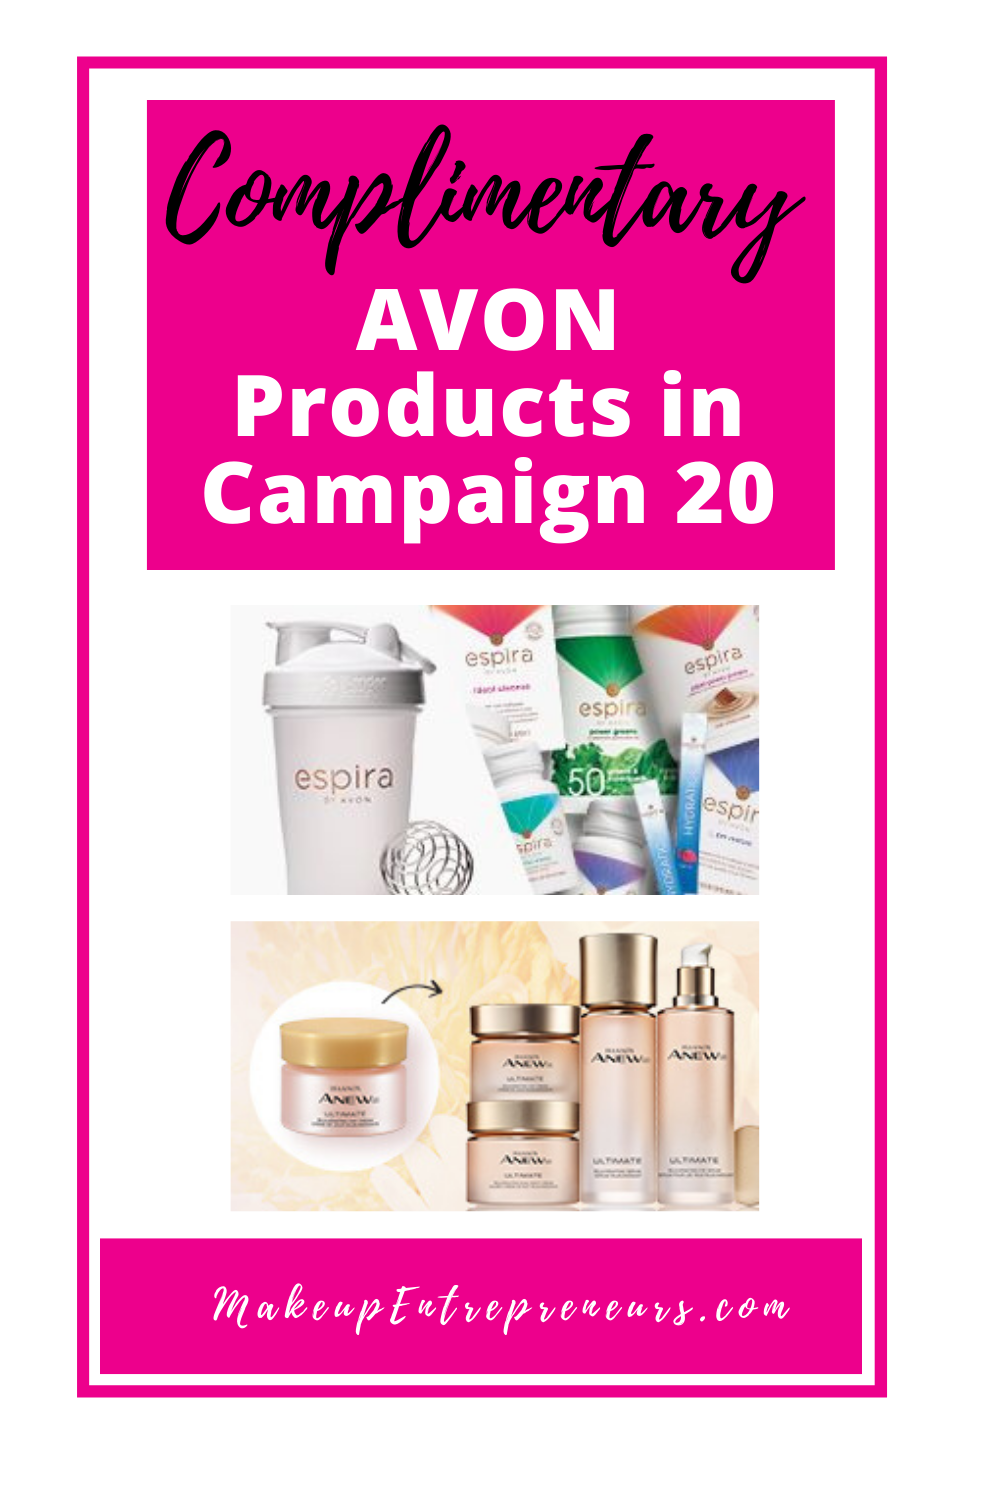 Complimentary Avon Products in Campaign 20 2020